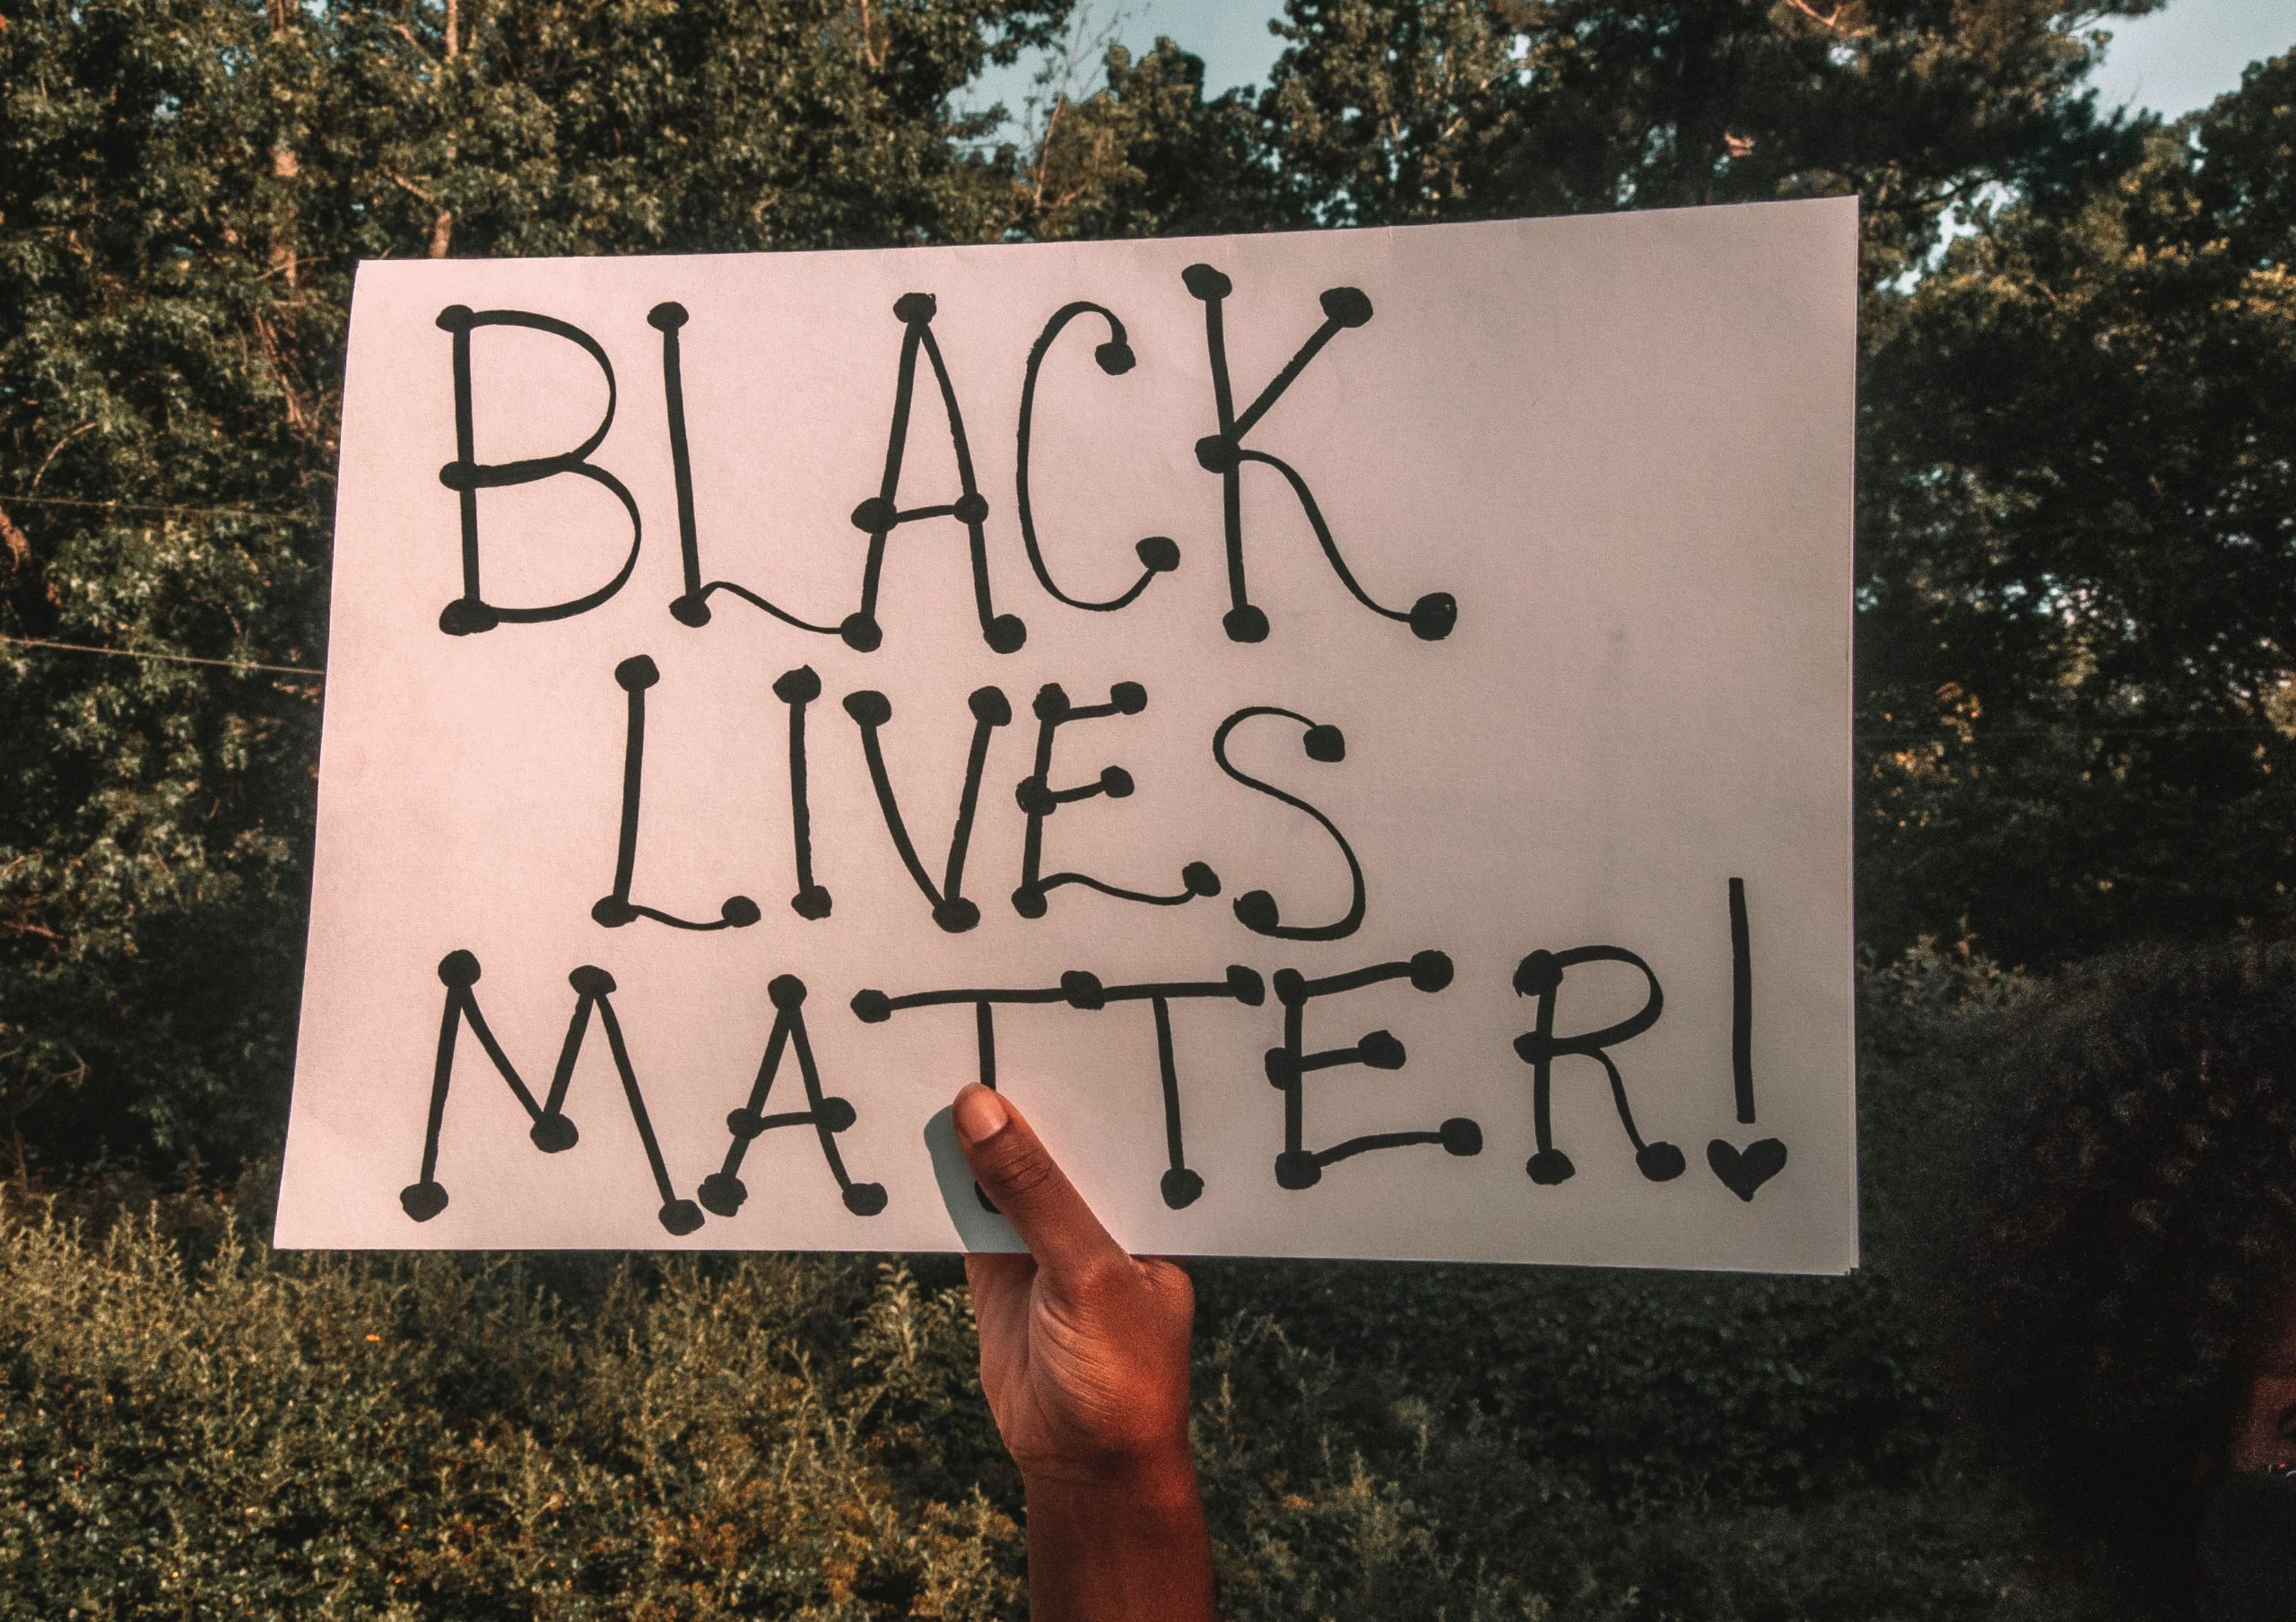 Photo: A black person's hand holding up a handmade Black Lives Matter sign, against a natural looking background.